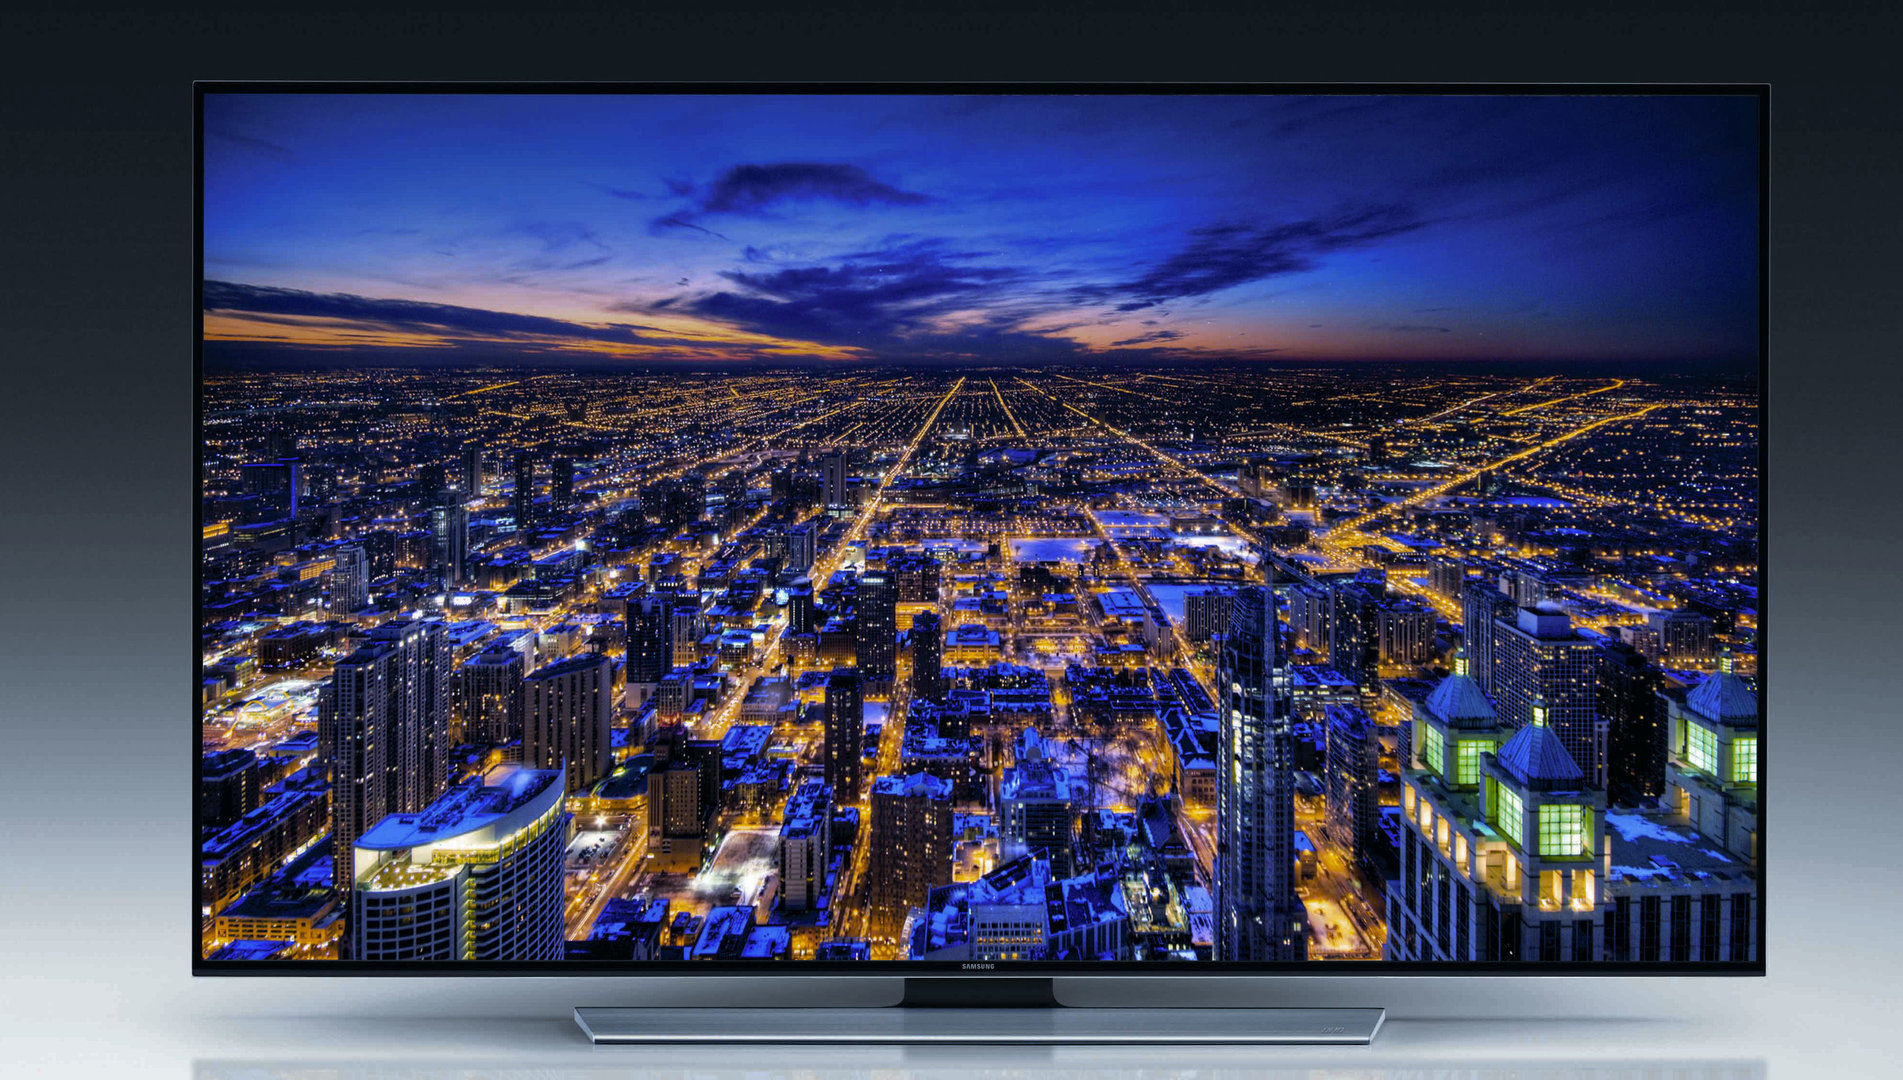 ces 2014 samsung unveils 105 inch curved uhd tv in new uhd line up afterdawn. Black Bedroom Furniture Sets. Home Design Ideas